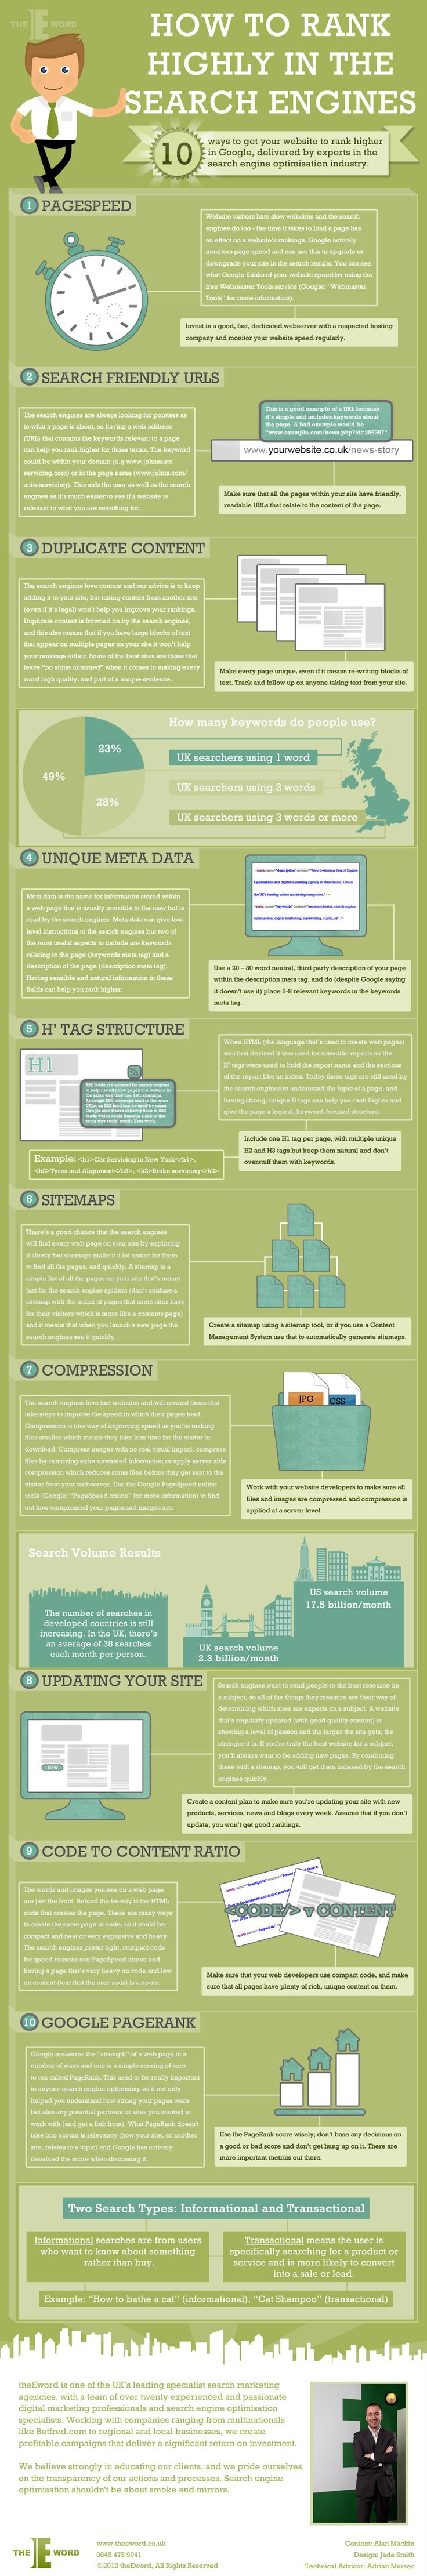 How to rank highly in the search engines #infographic